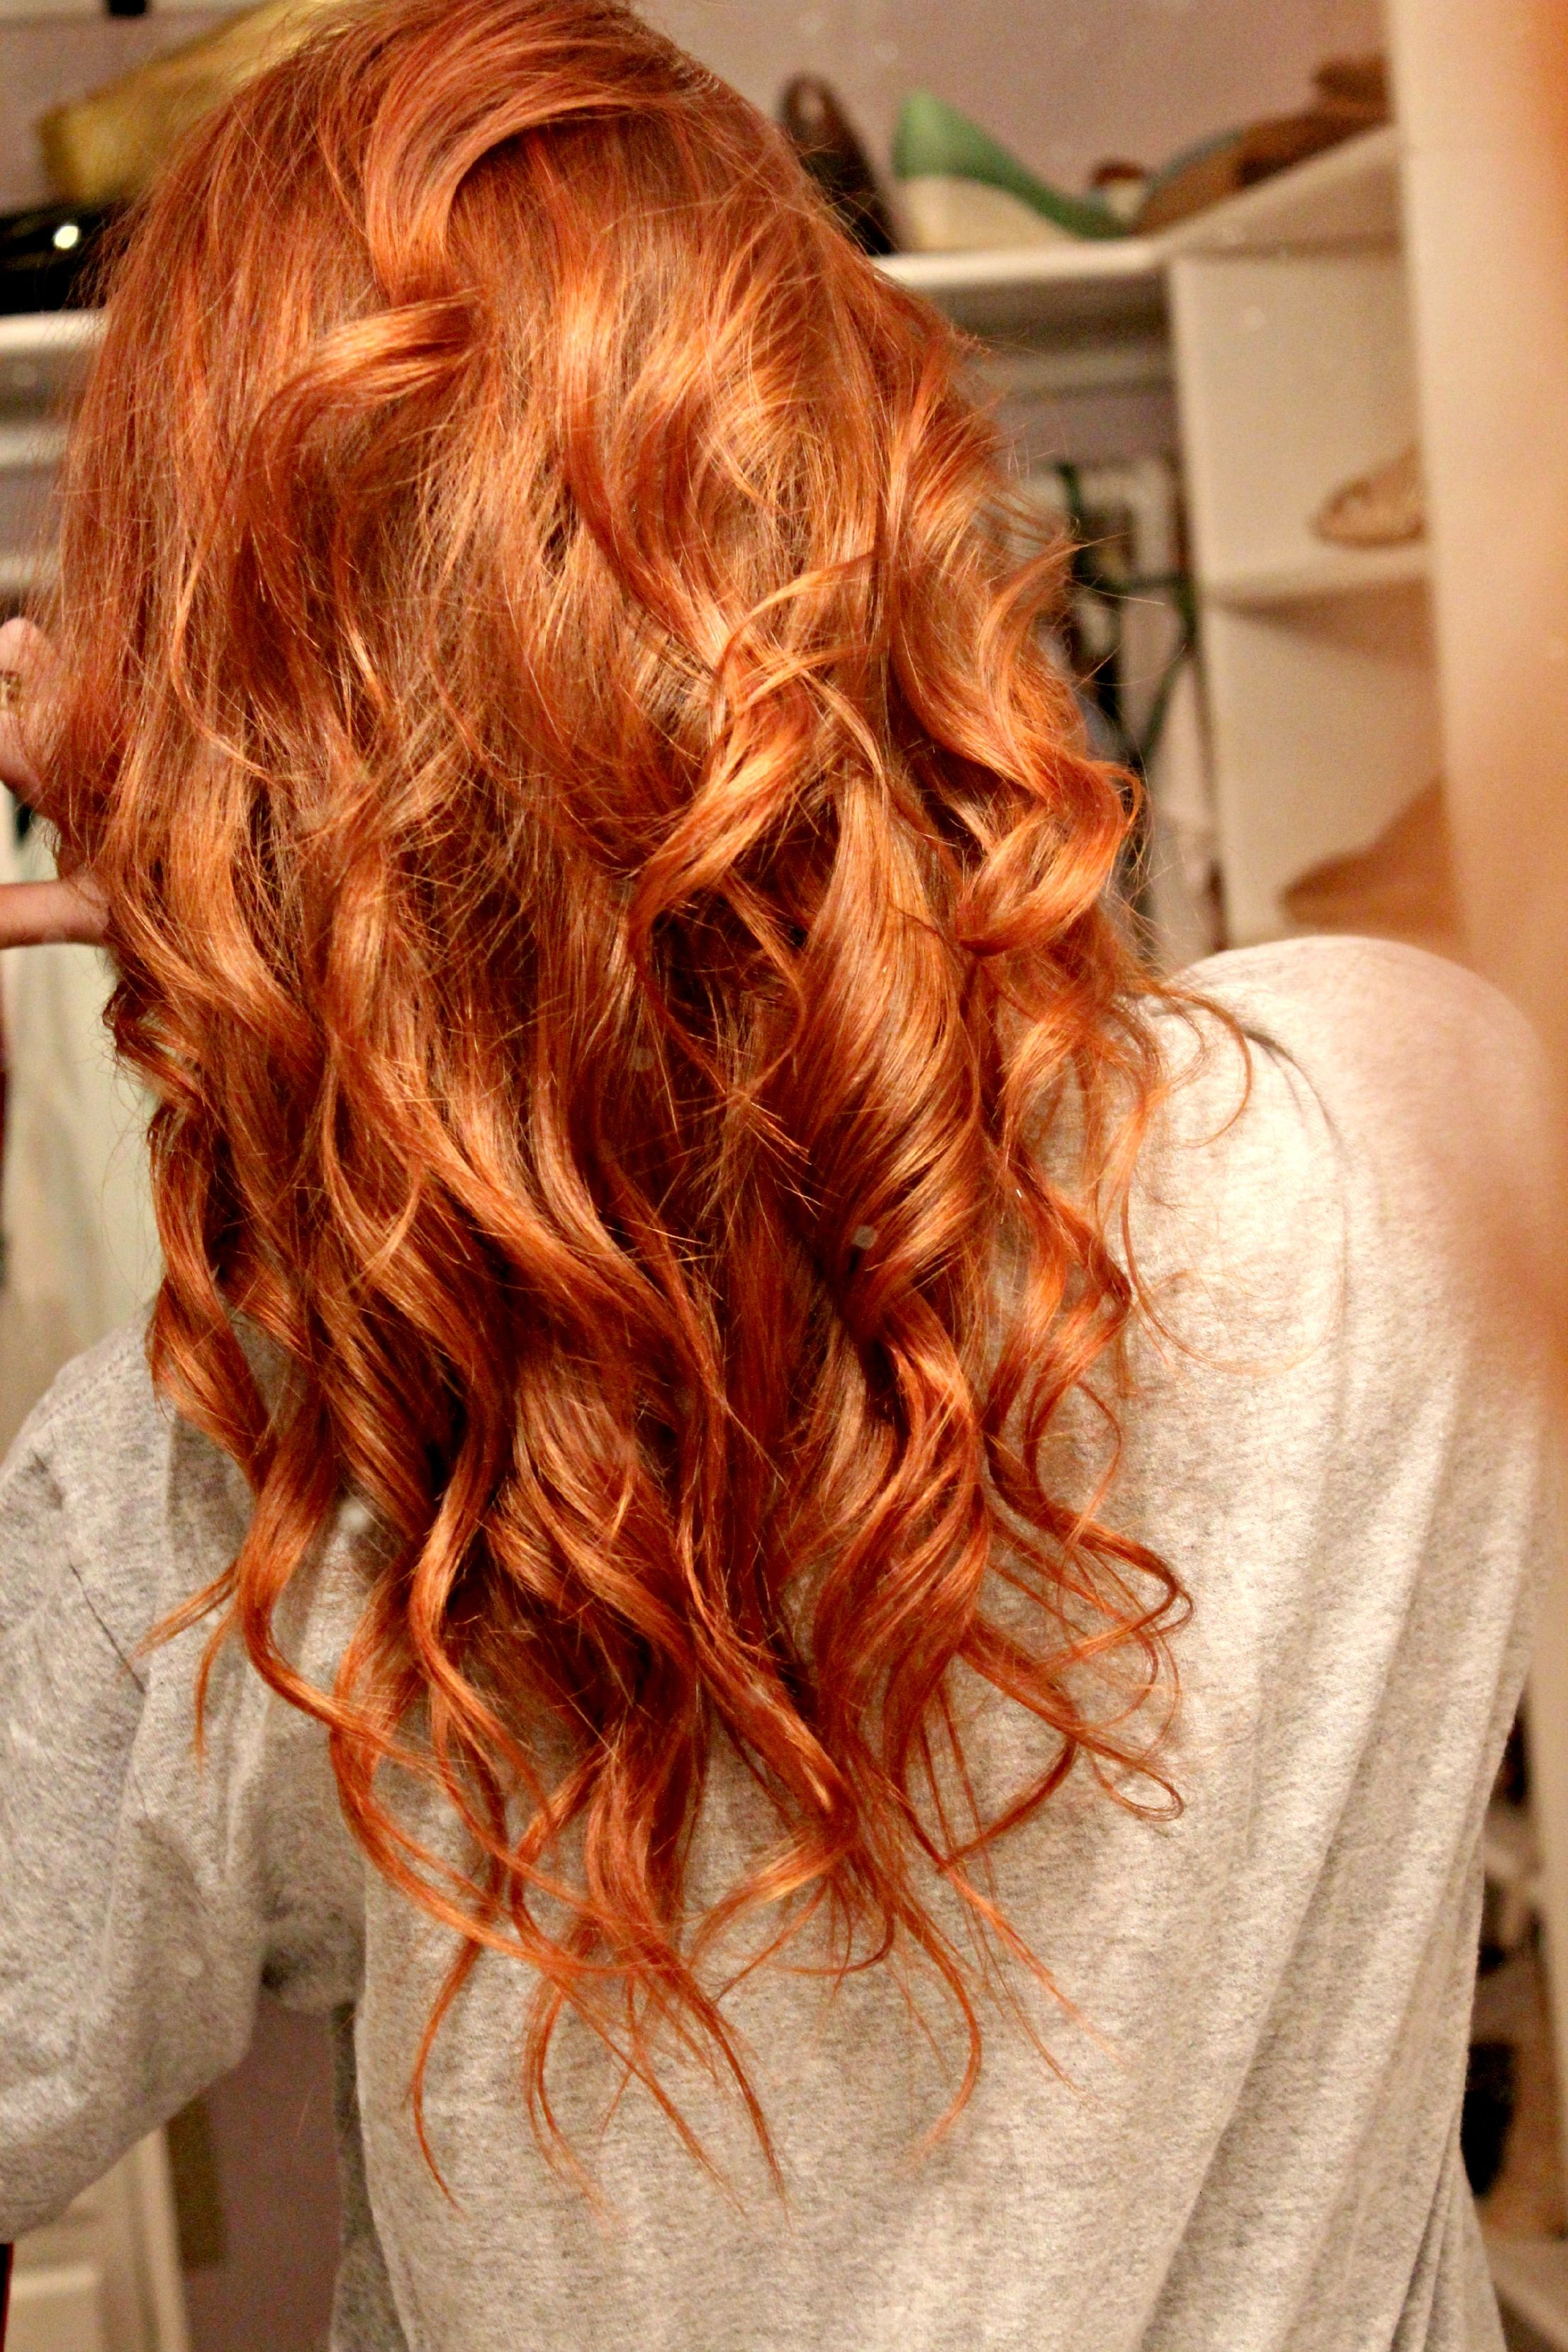 Red hair uc great product reviews for healthy long hair on this blog